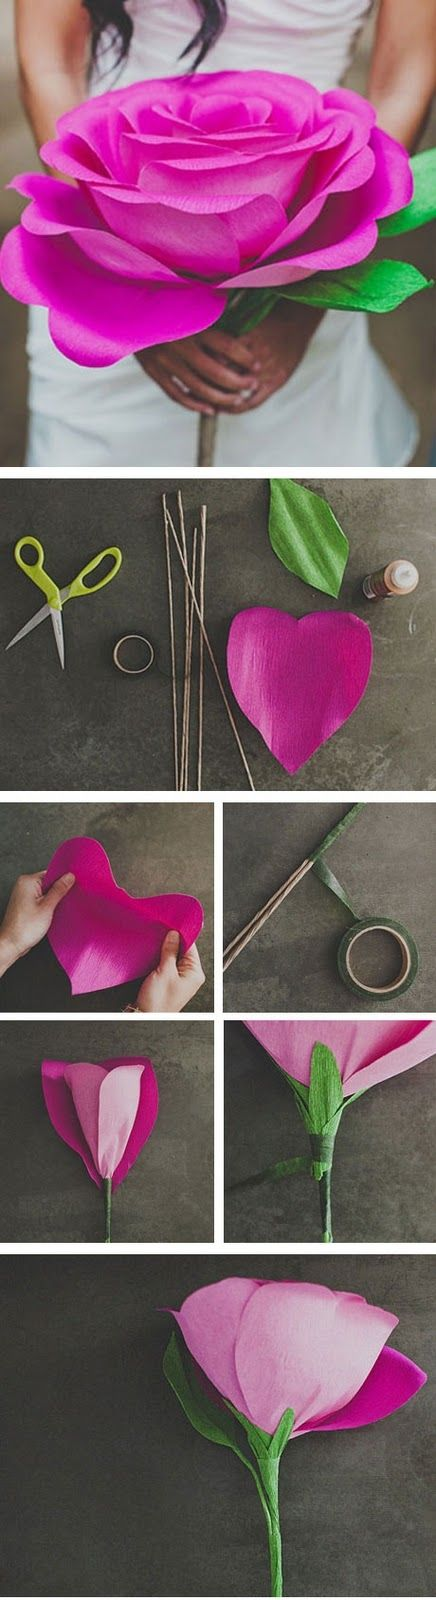 Paper Flowers and Paper Crafts. DIY Paper Flower Tutorials and Craft Ideas